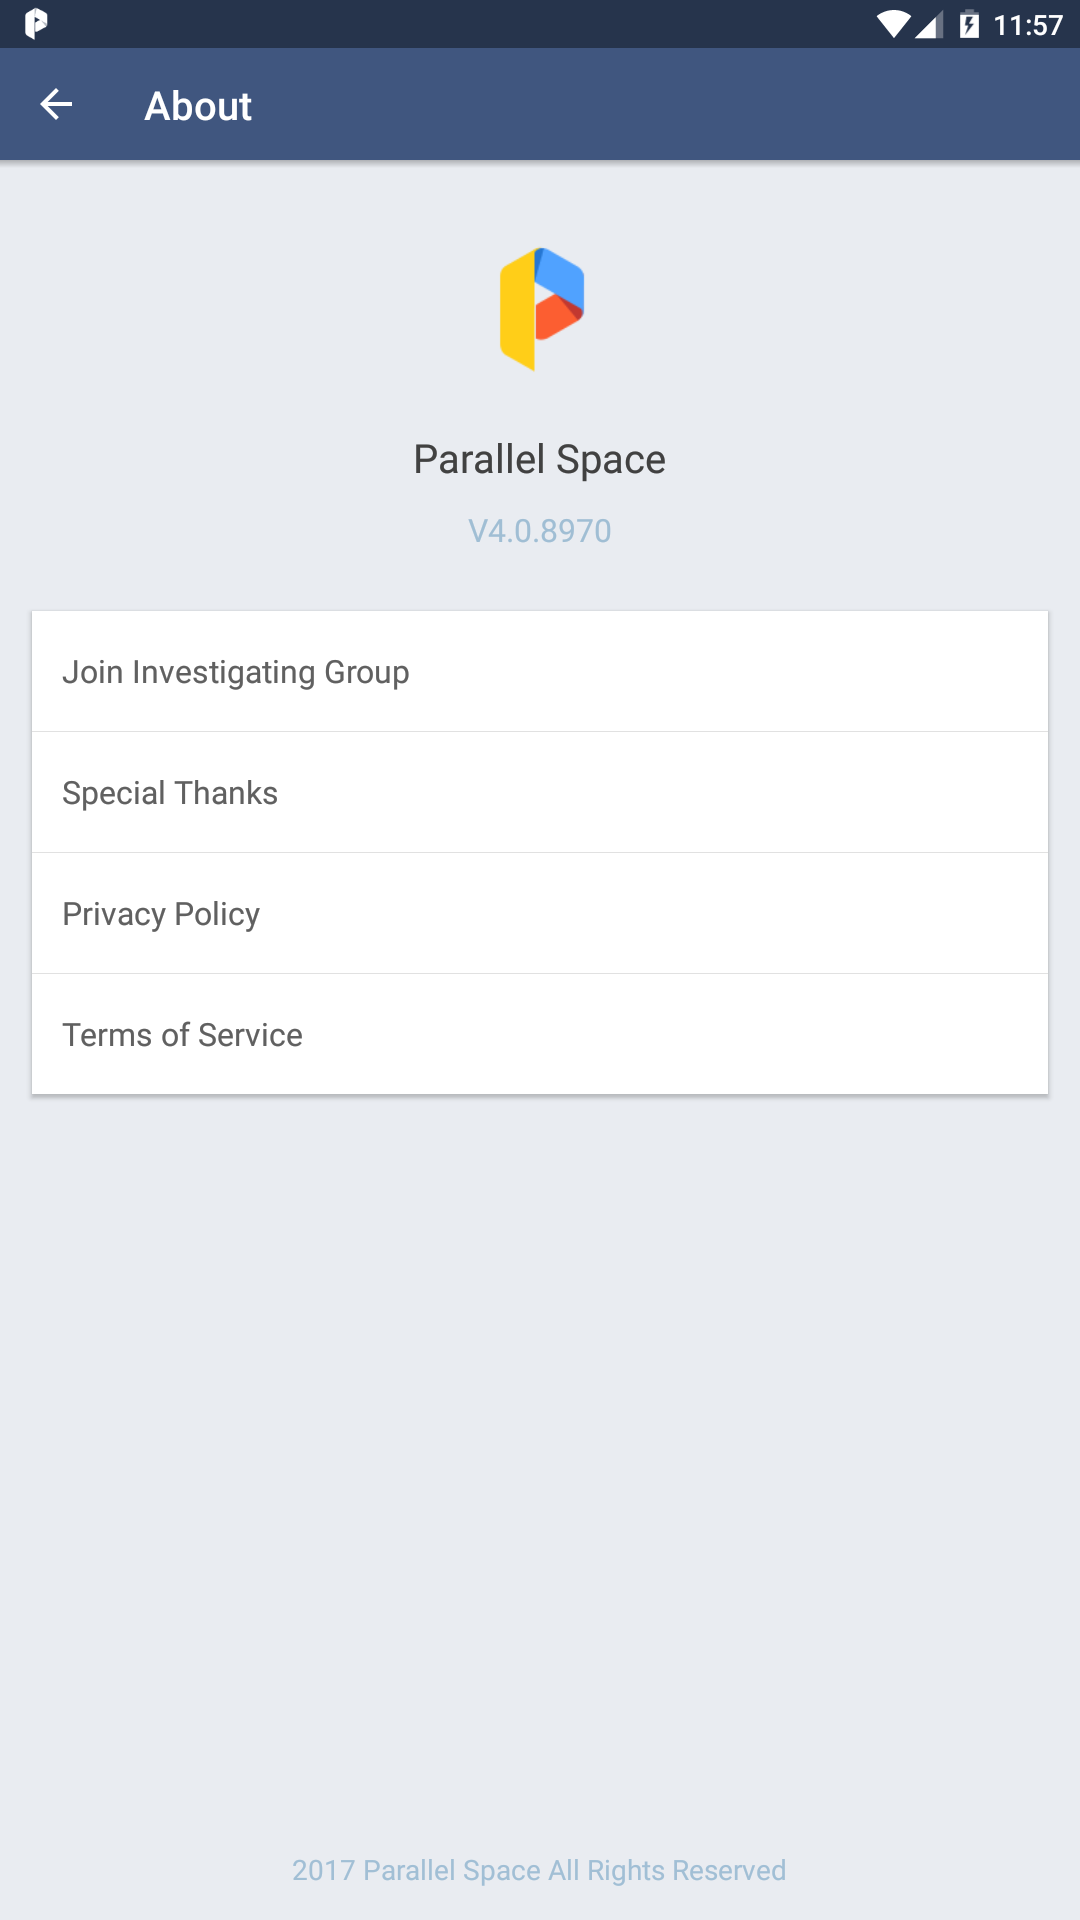 ParallelSpace4.0.8970